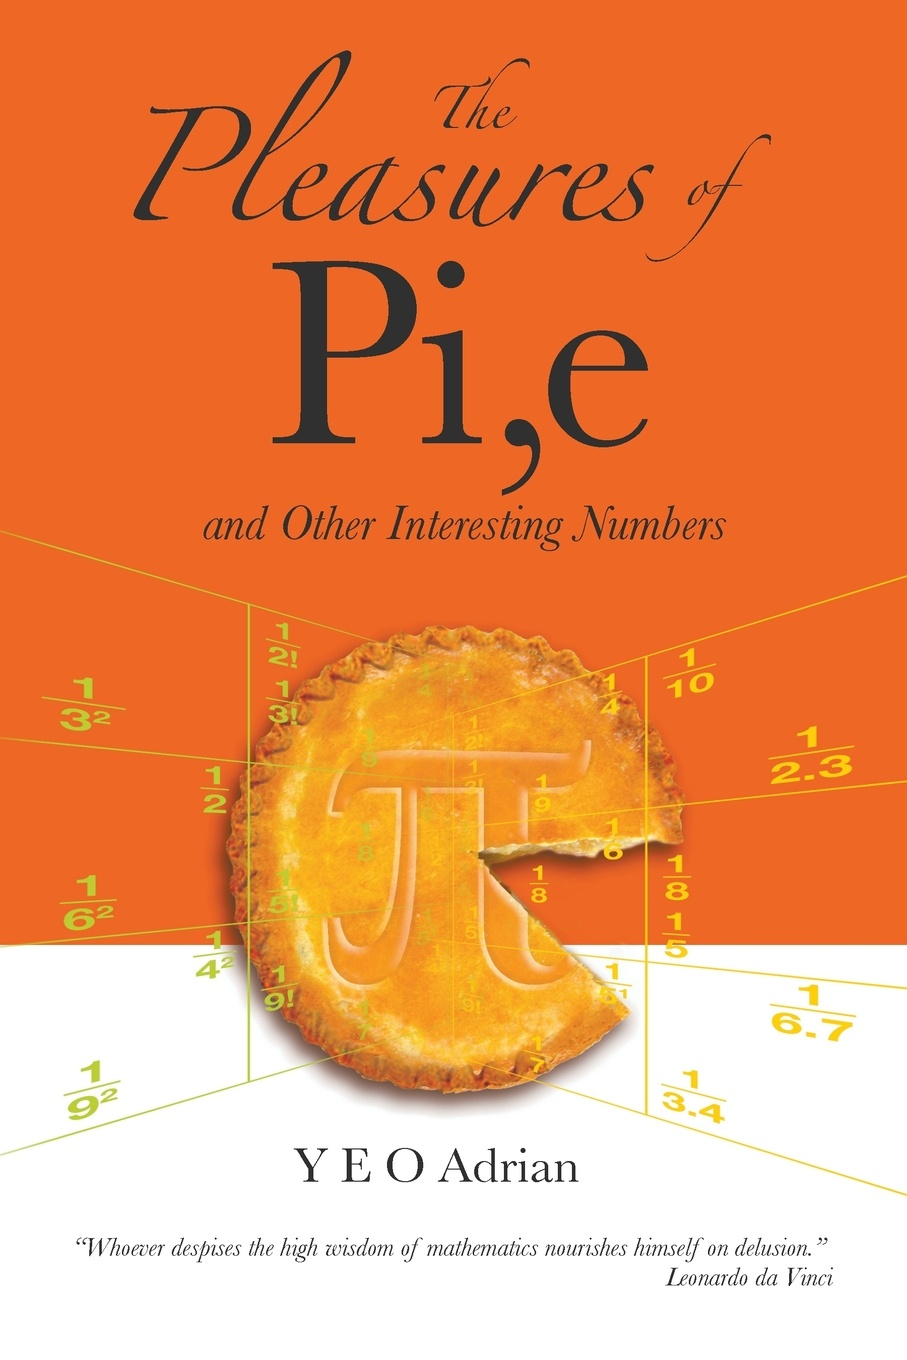 Y. E. O. Adrian The Pleasures of Pi, e. And Other Interesting Numbers o pfiffner adrian geology of the alps